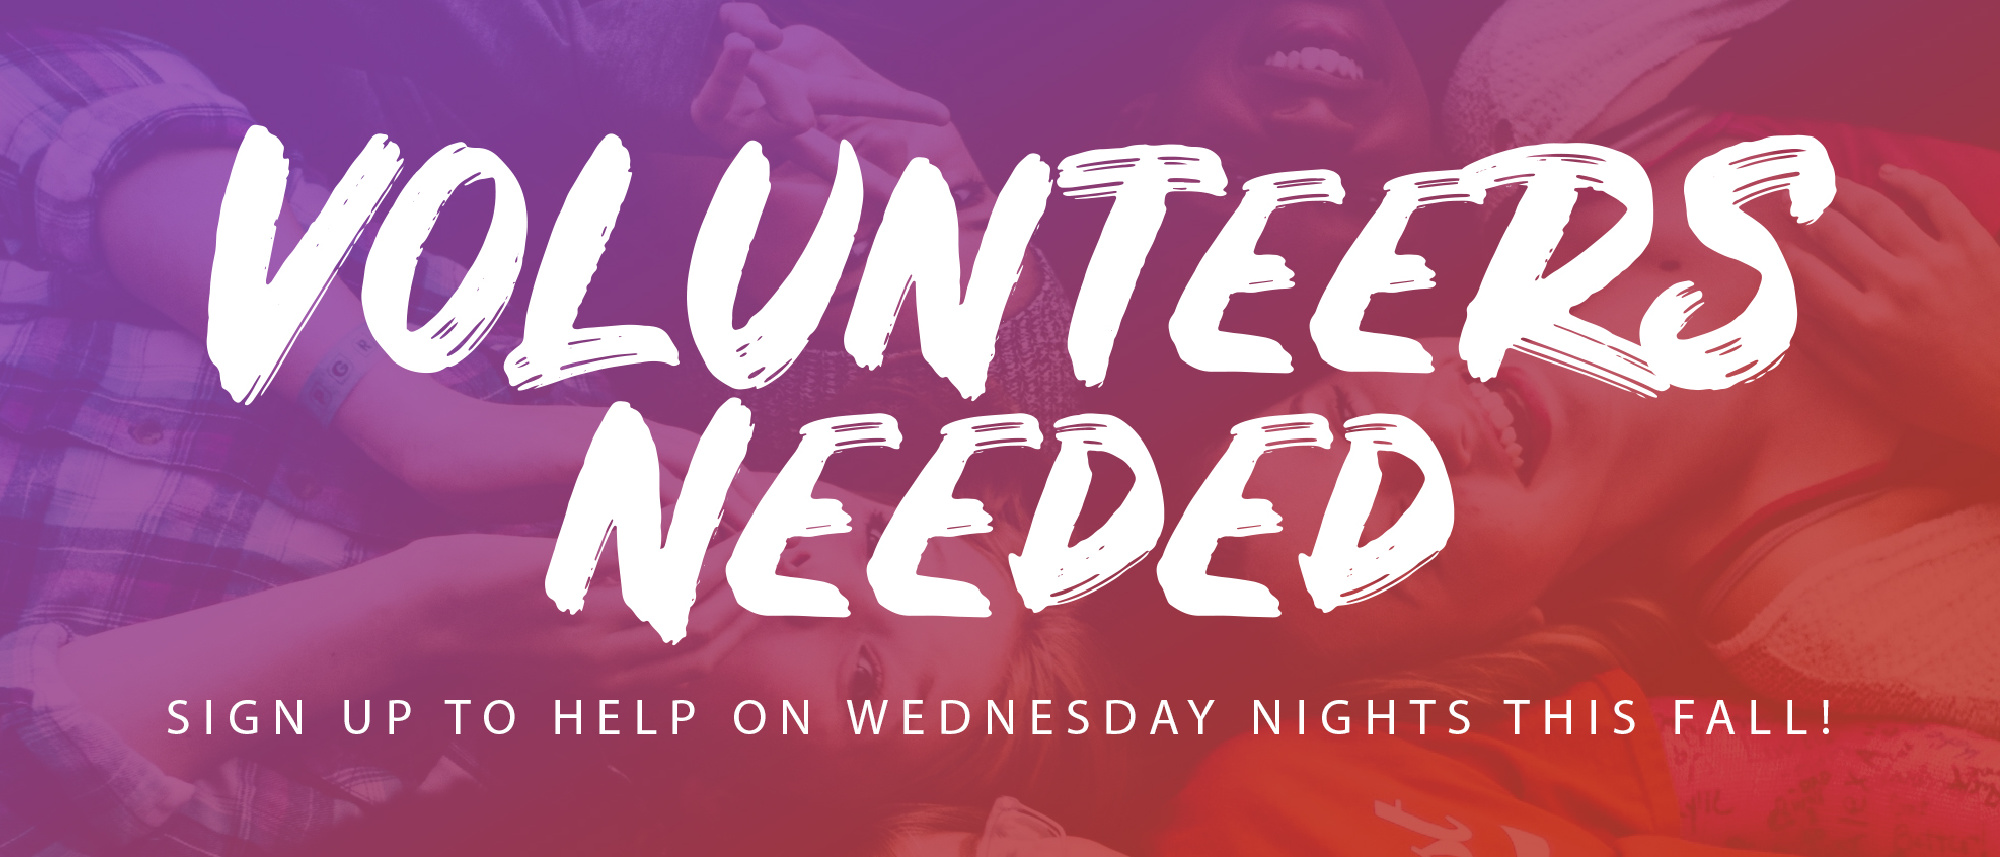 We need volunteers for Wednesday nights! Click to learn more.